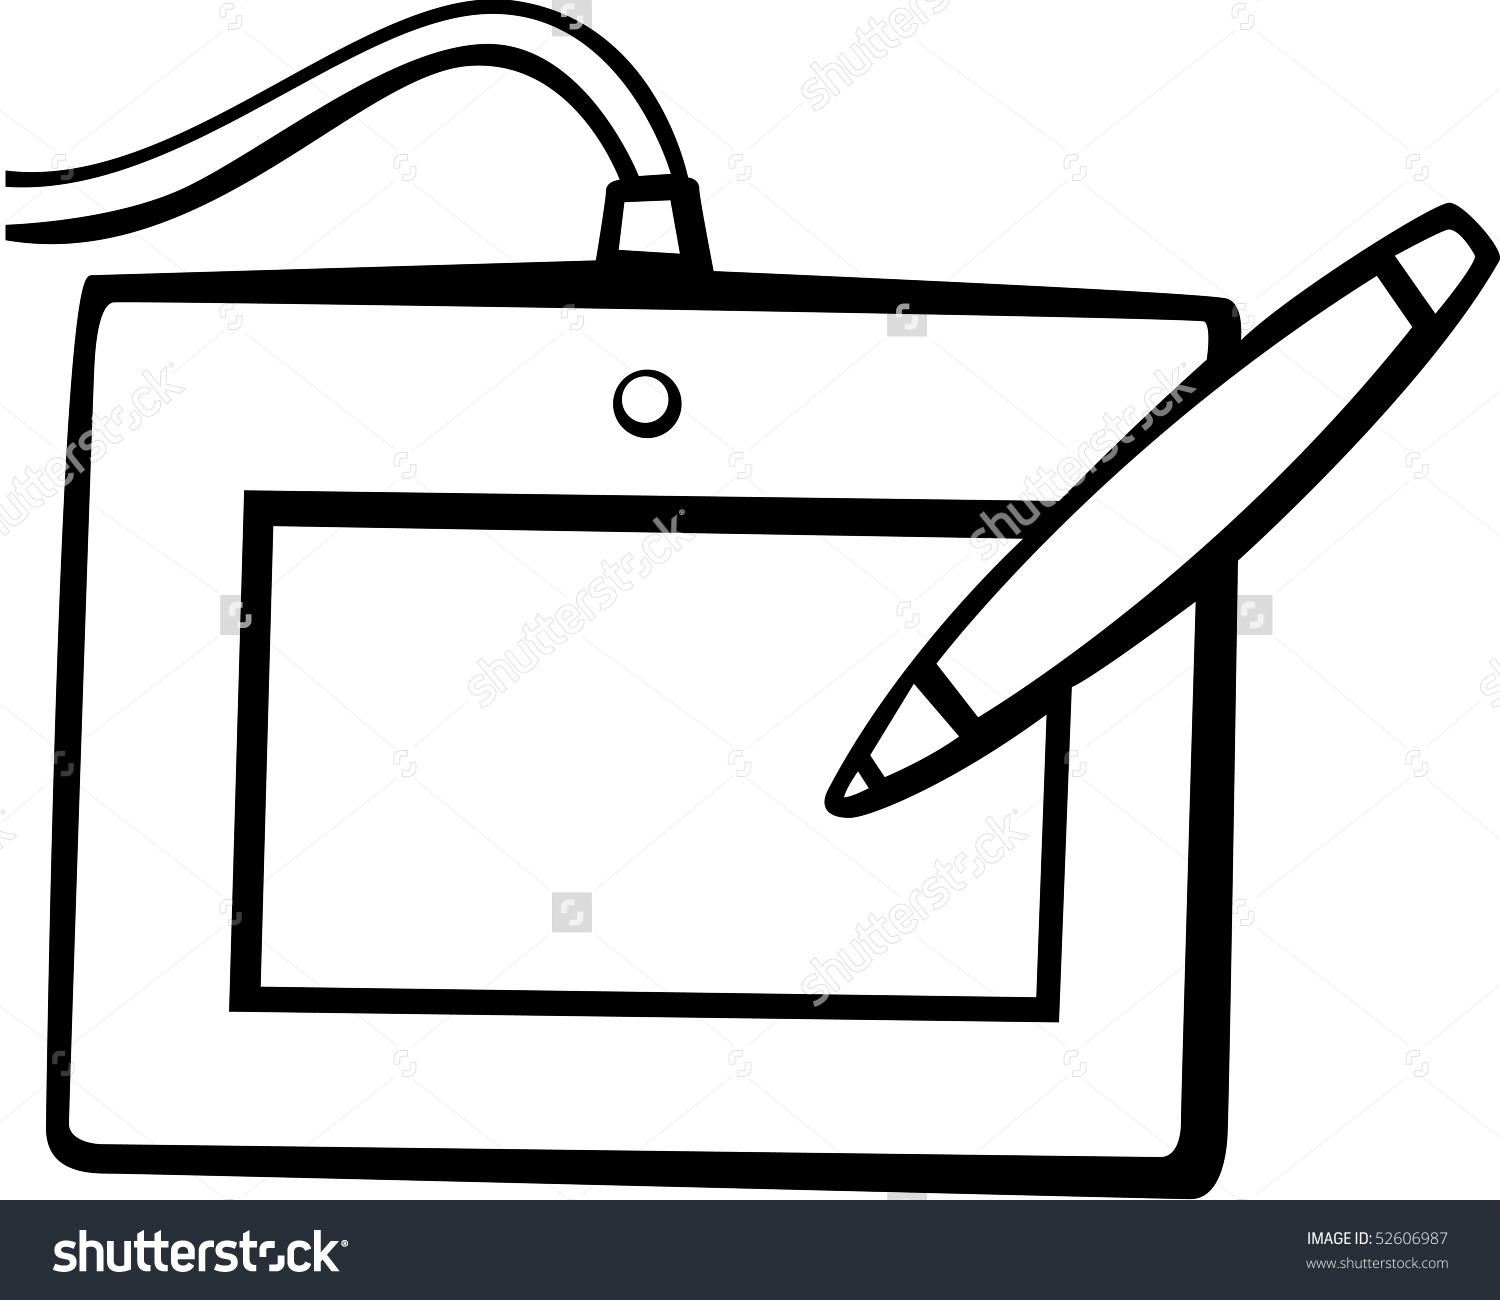 Computer Drawing Tablet Stock Photo 52606987 : Shutterstock.